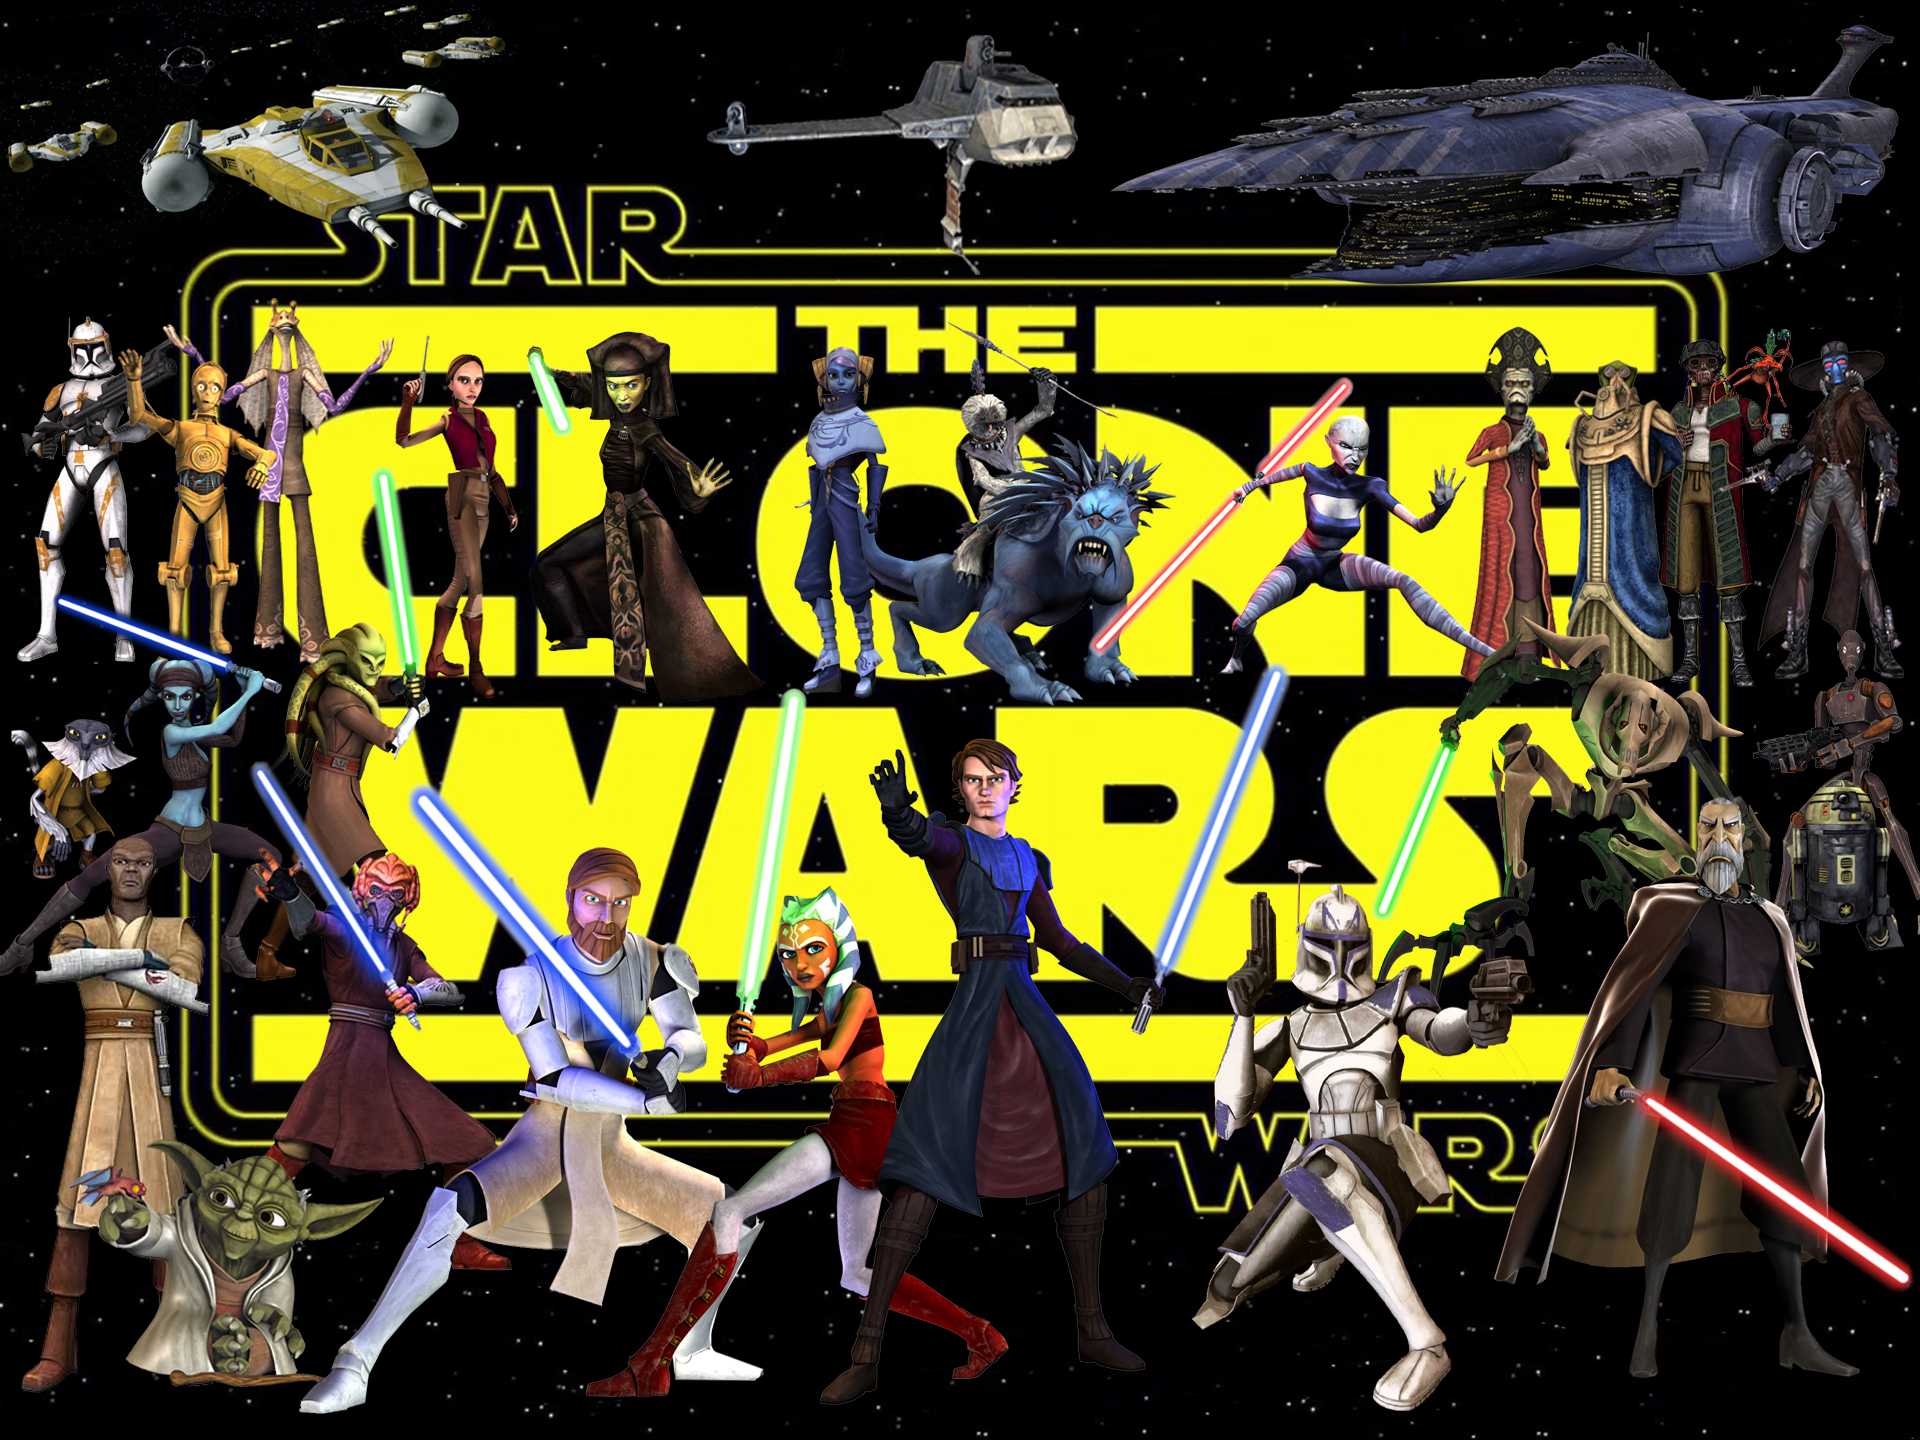 Star wars the clone wars!